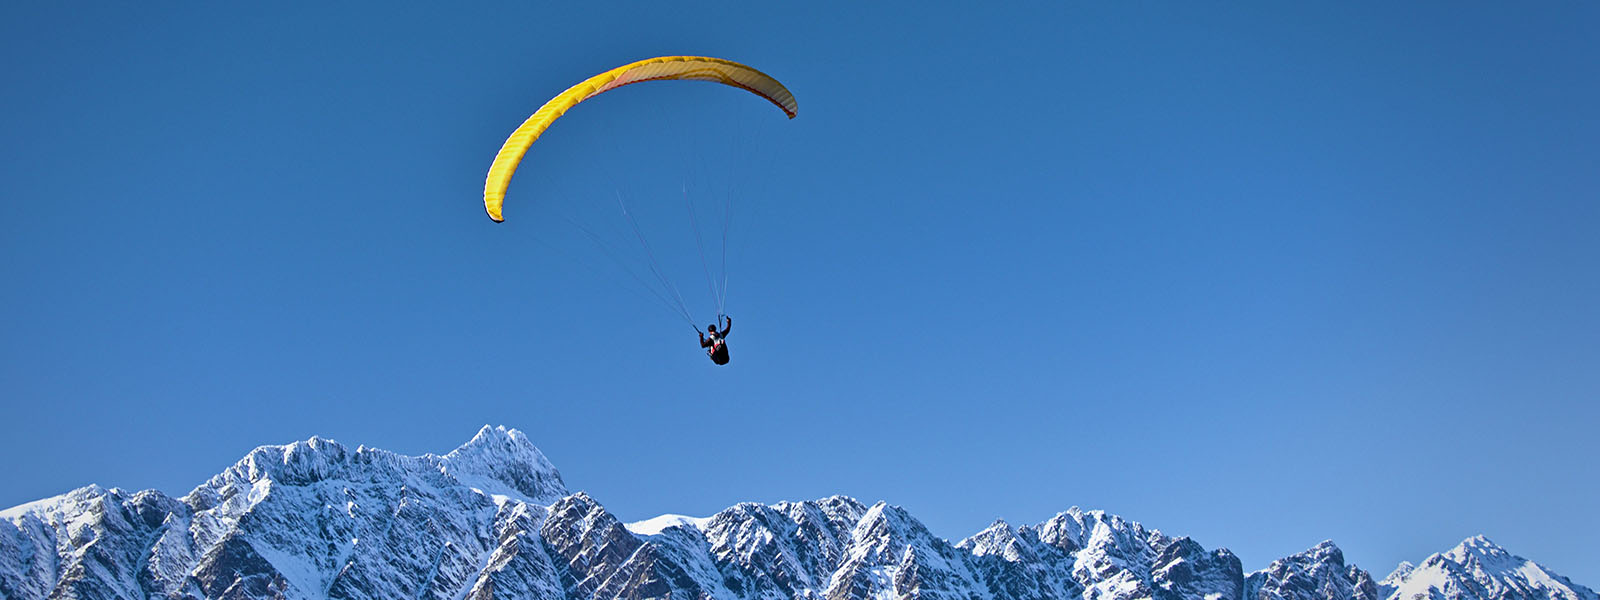 Paraglider above Remarkables range, Queenstown, Otago, New Zealand